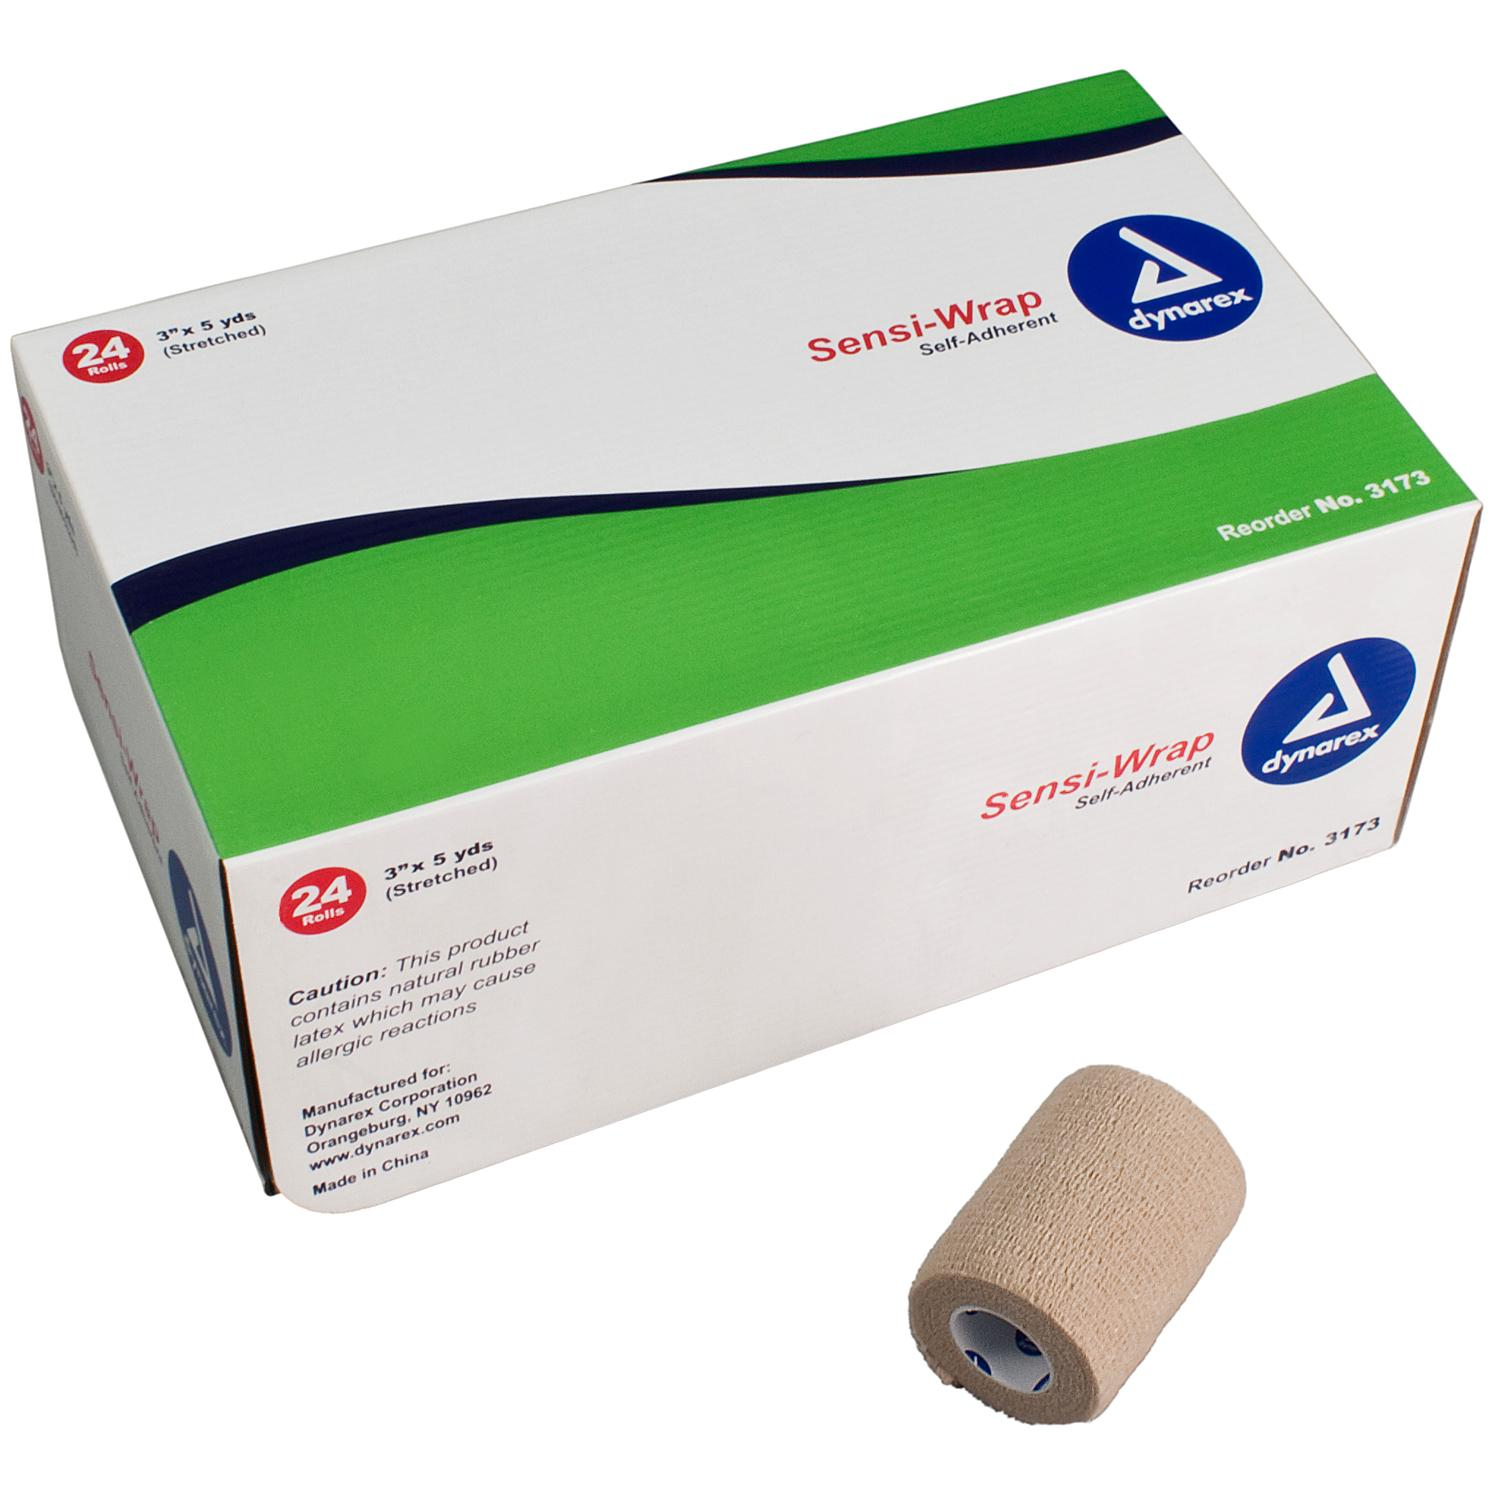 2 Inch Sensi-Wrap: Single Roll (Tan) image